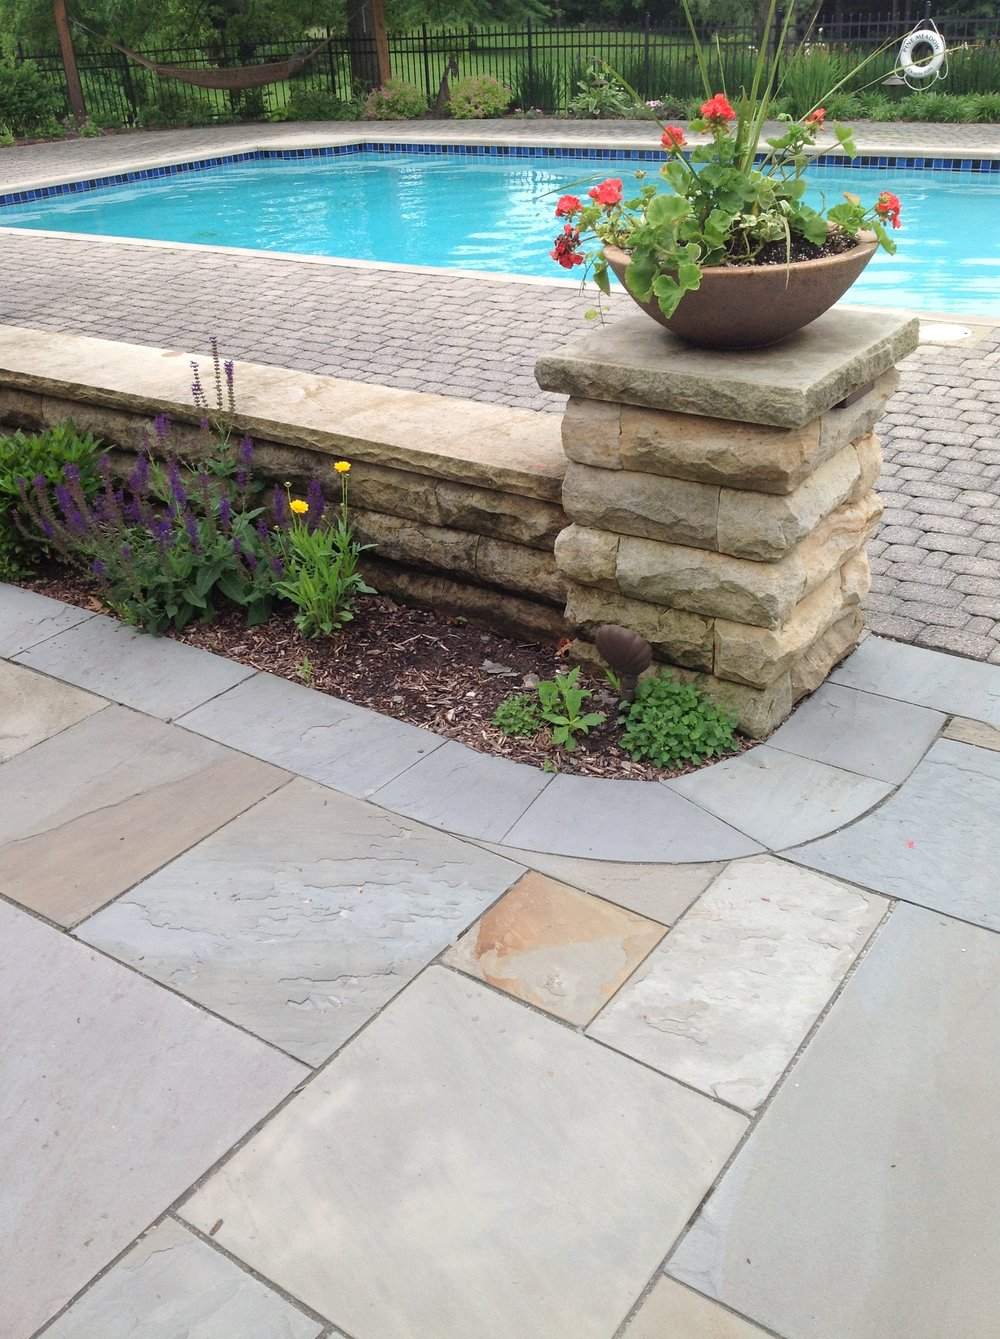 Unilock landscaping companies in Novelty, Ohio with top patio pavers and retaining wall